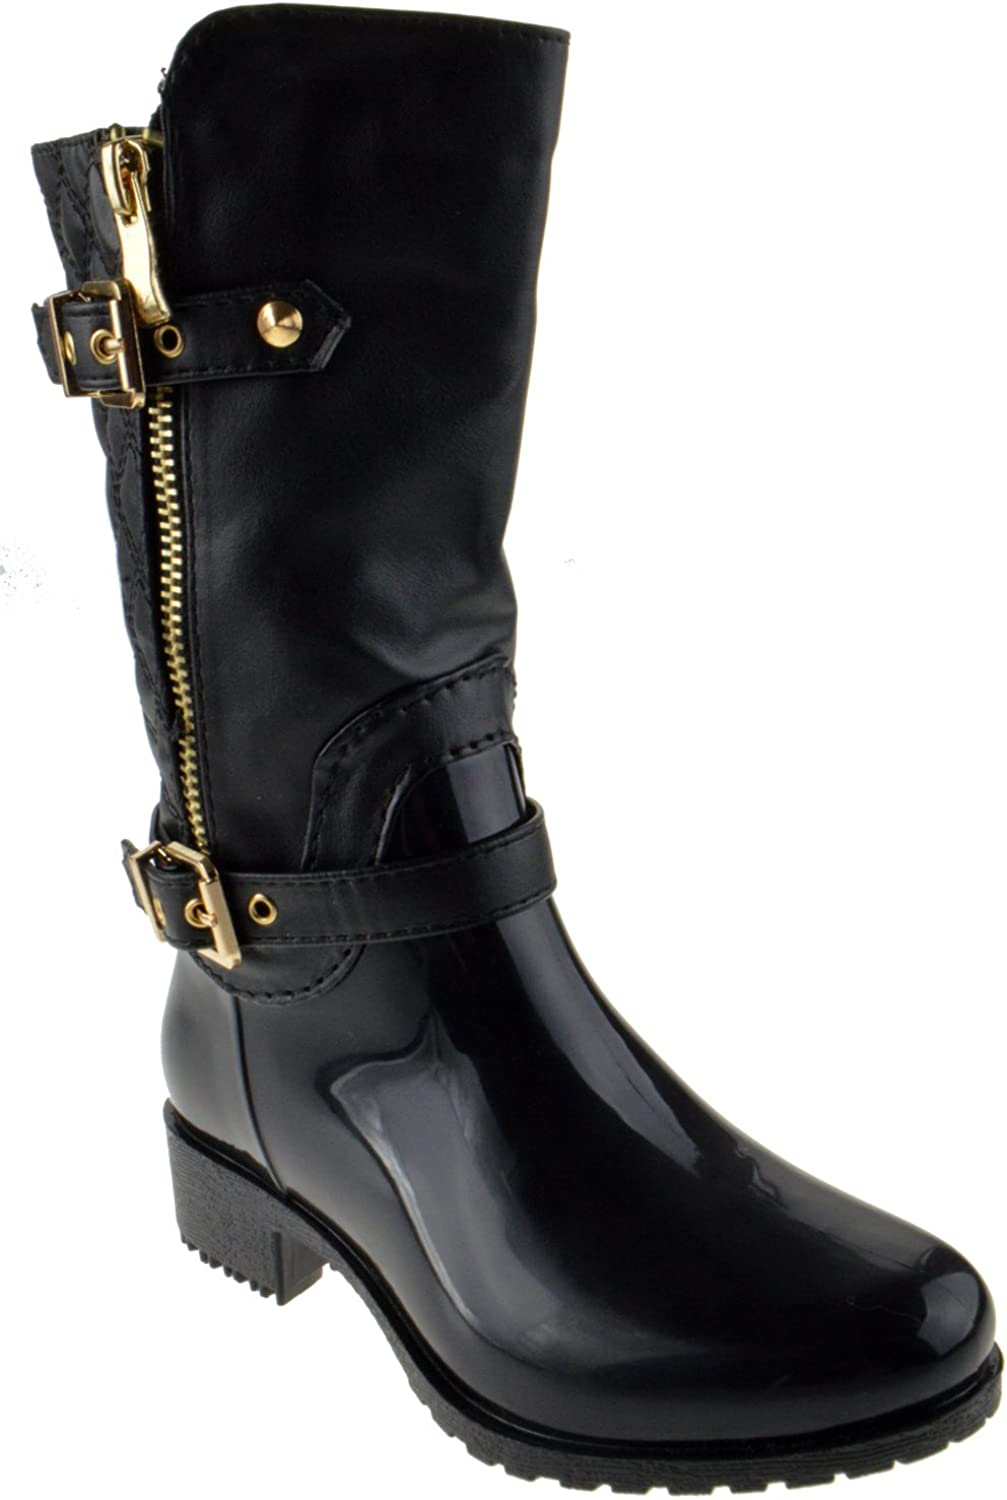 A surprise price is realized Lucky Top Oakland Mall Rainy Little Girls Riding Boots Zipper Waterproof PVC